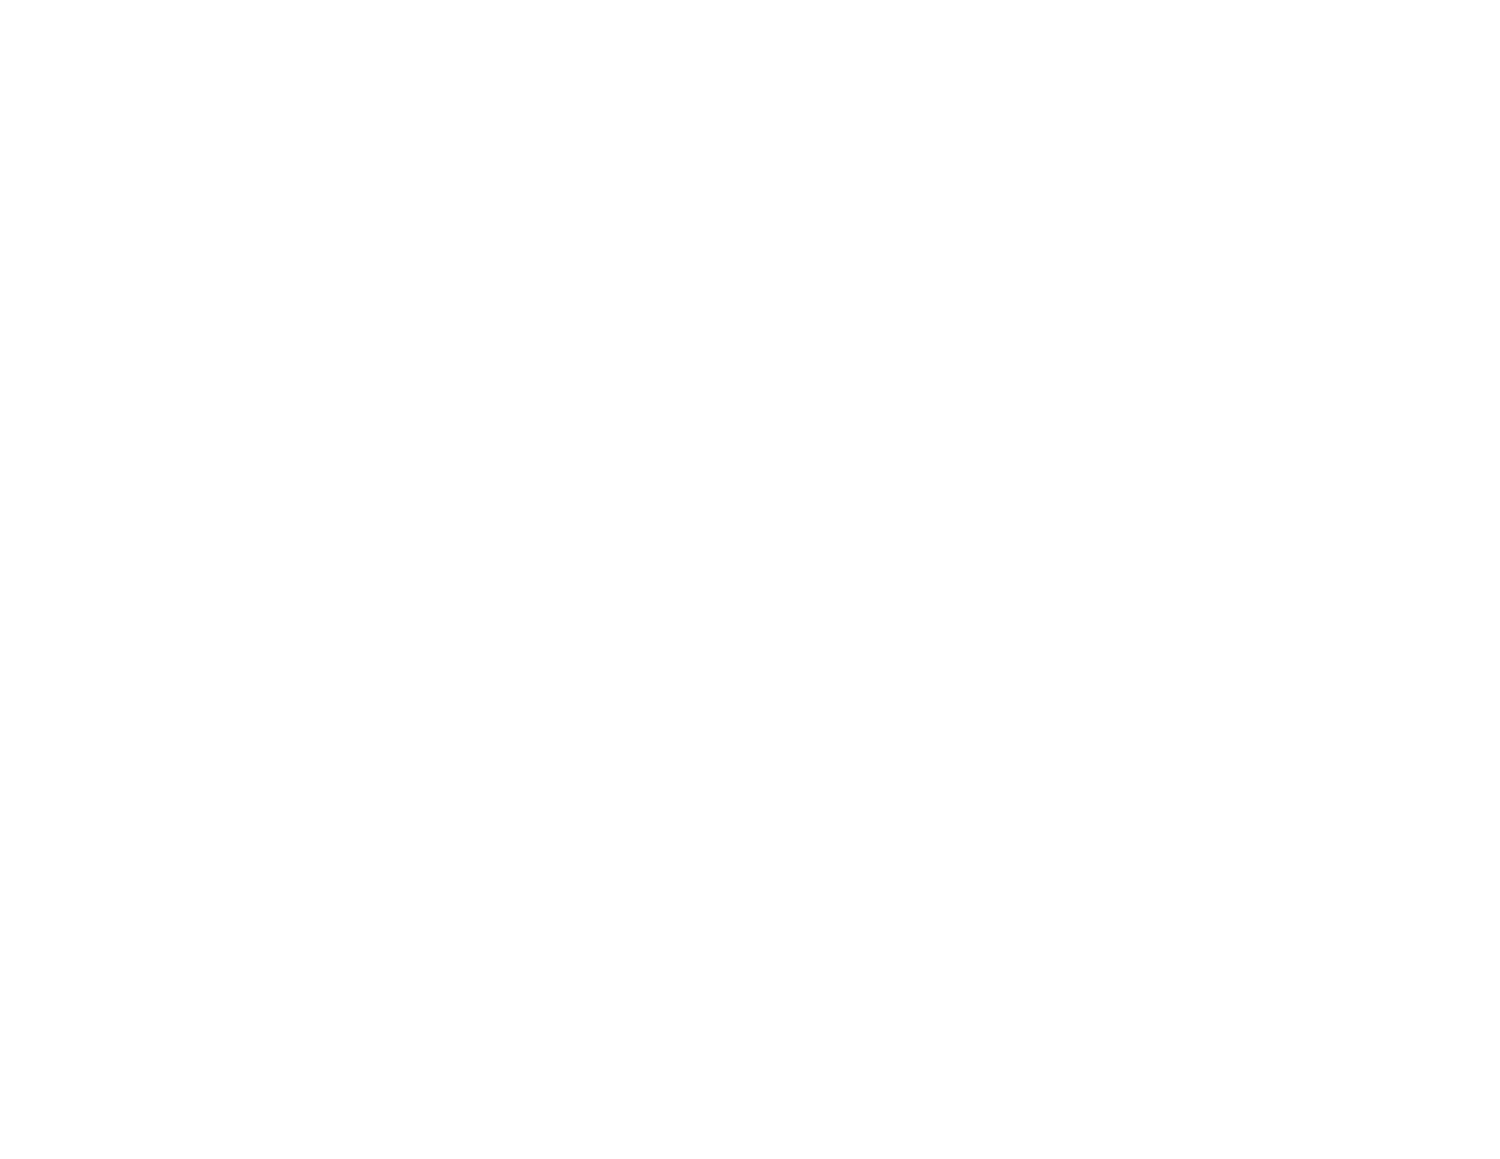 birdbrand - photography